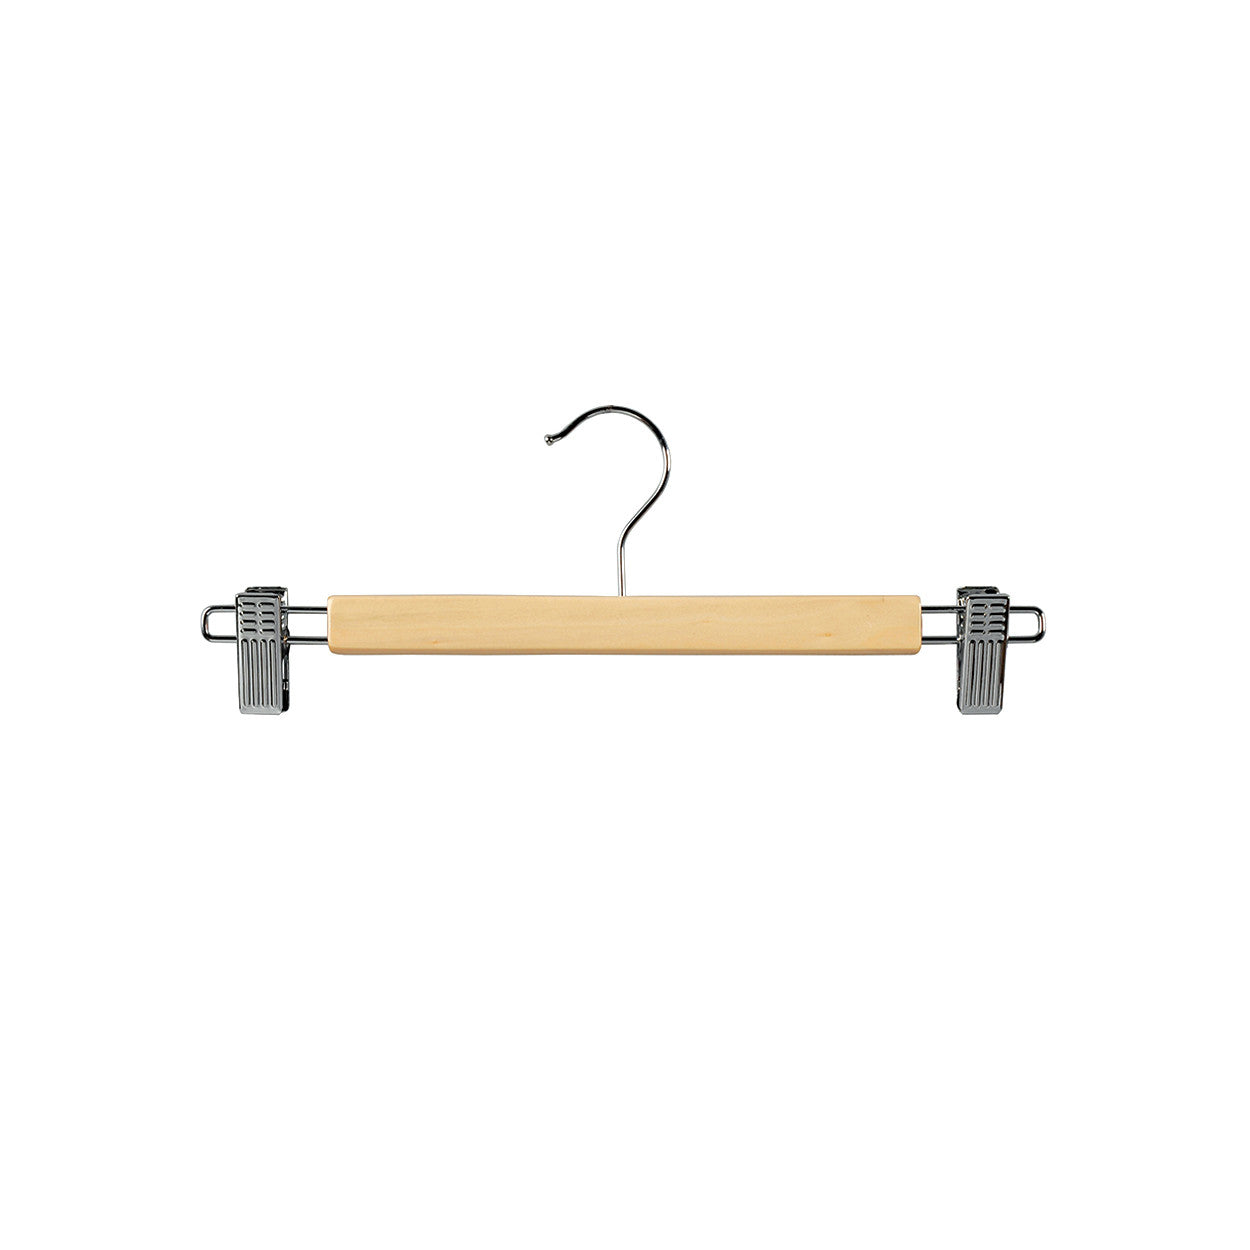 Beech Wooden hanger with clips at ends  330 W x 12 mm Thick (Bundle of 10) H2634BH-10